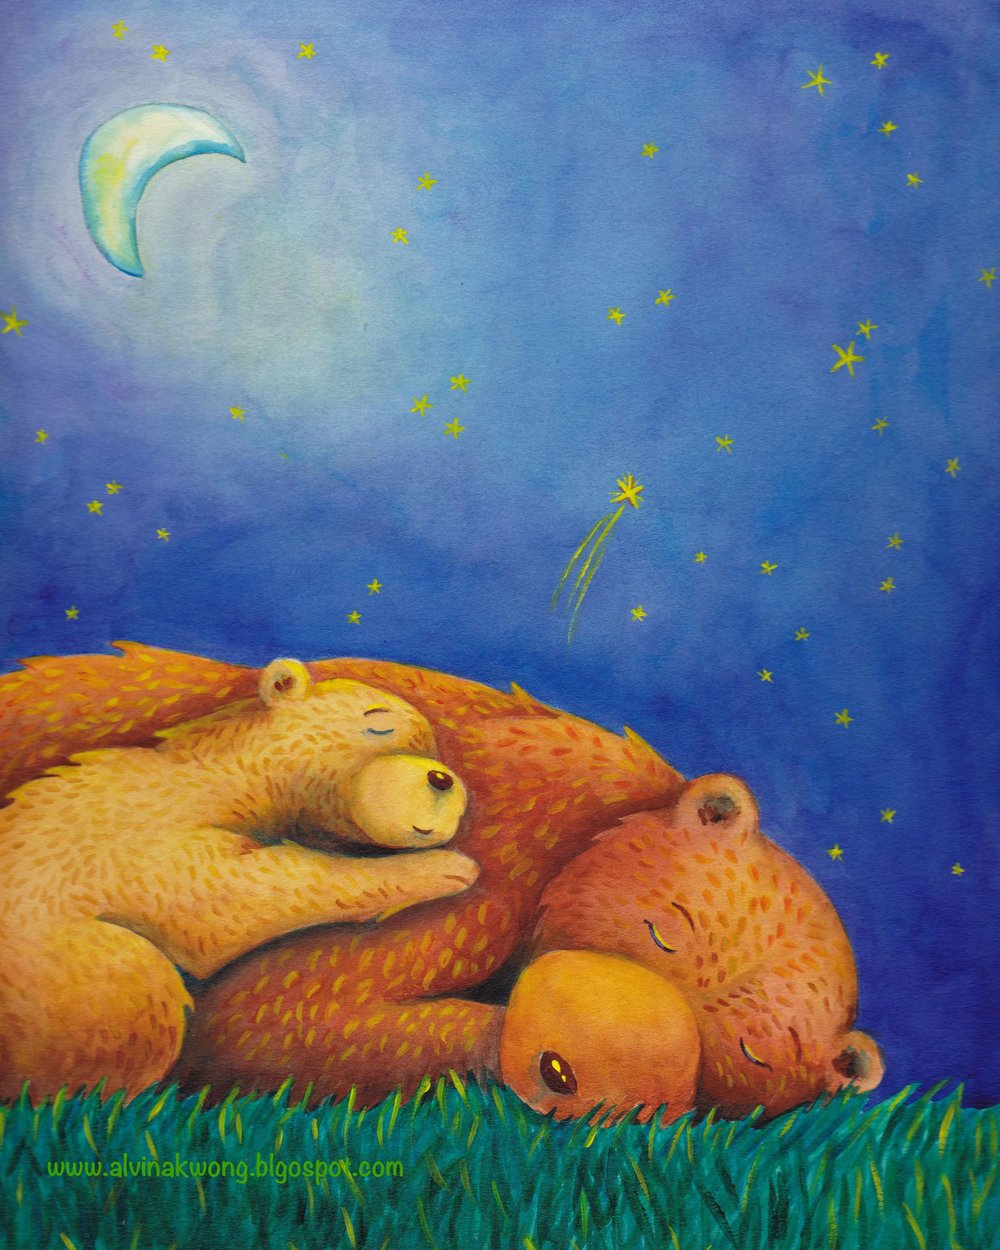 Goodnight Bear 8x10 300dpi web.jpg